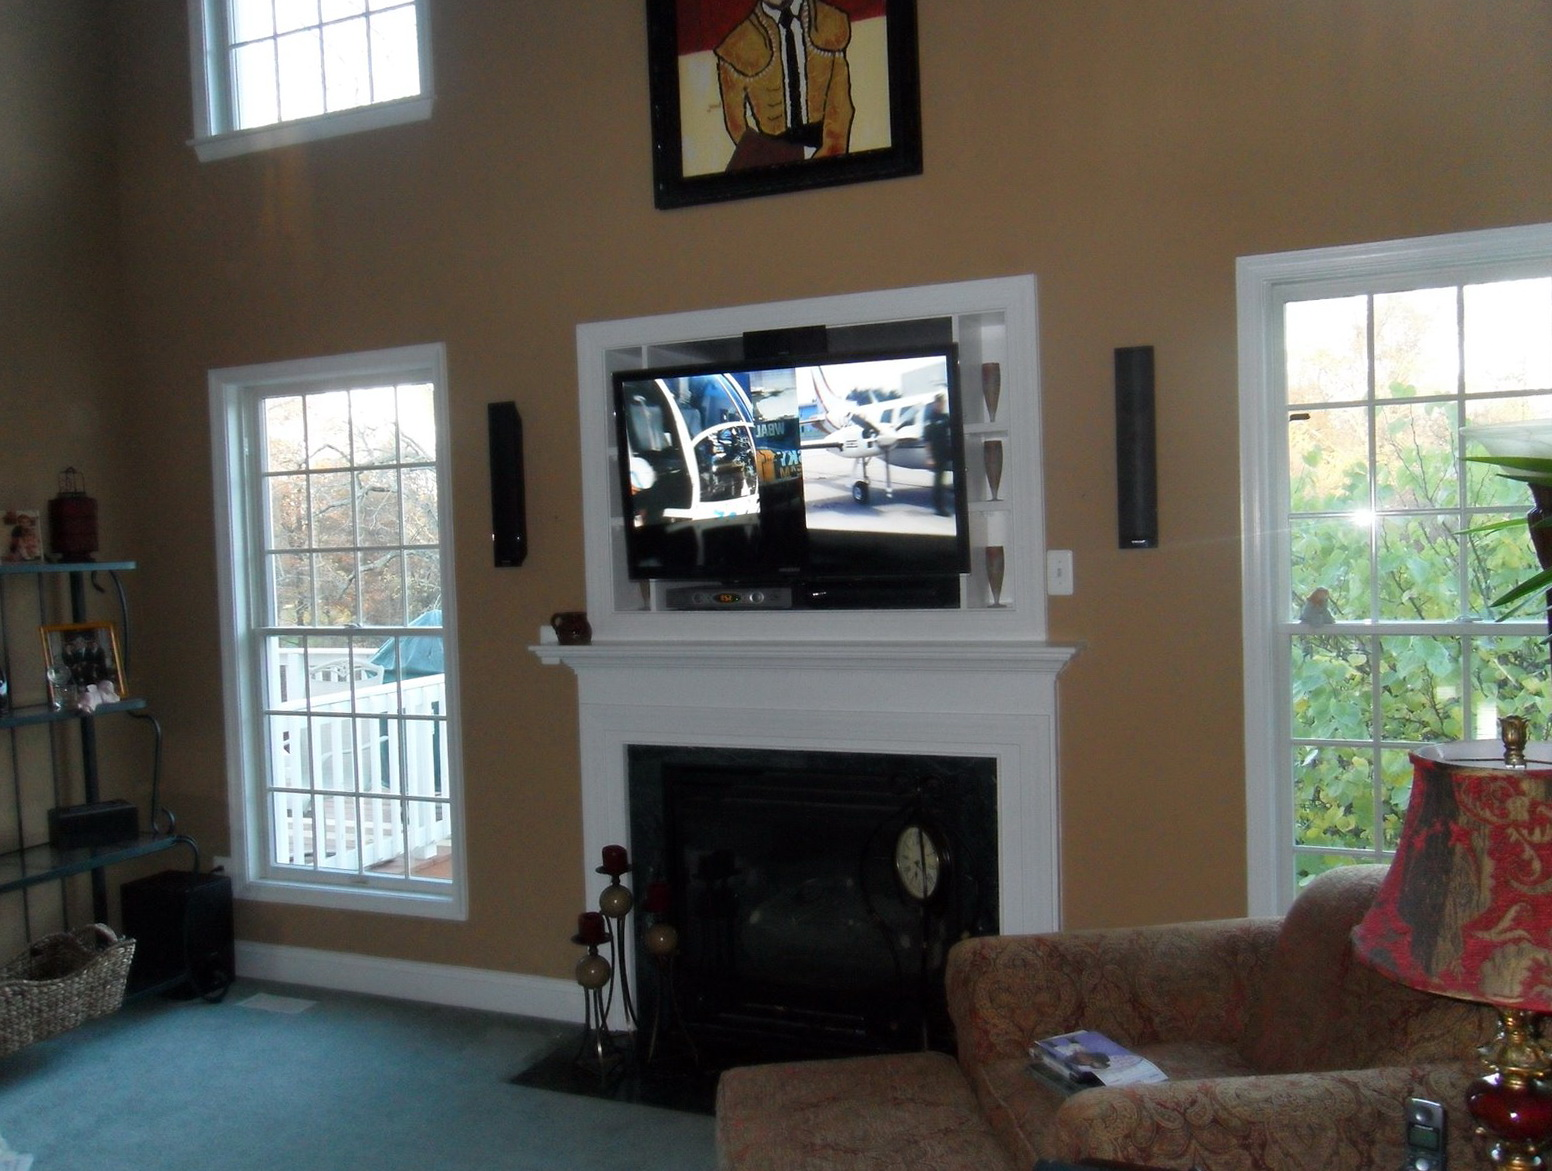 Mounting Tv Fireplace Hiding Cables Awesome Where To